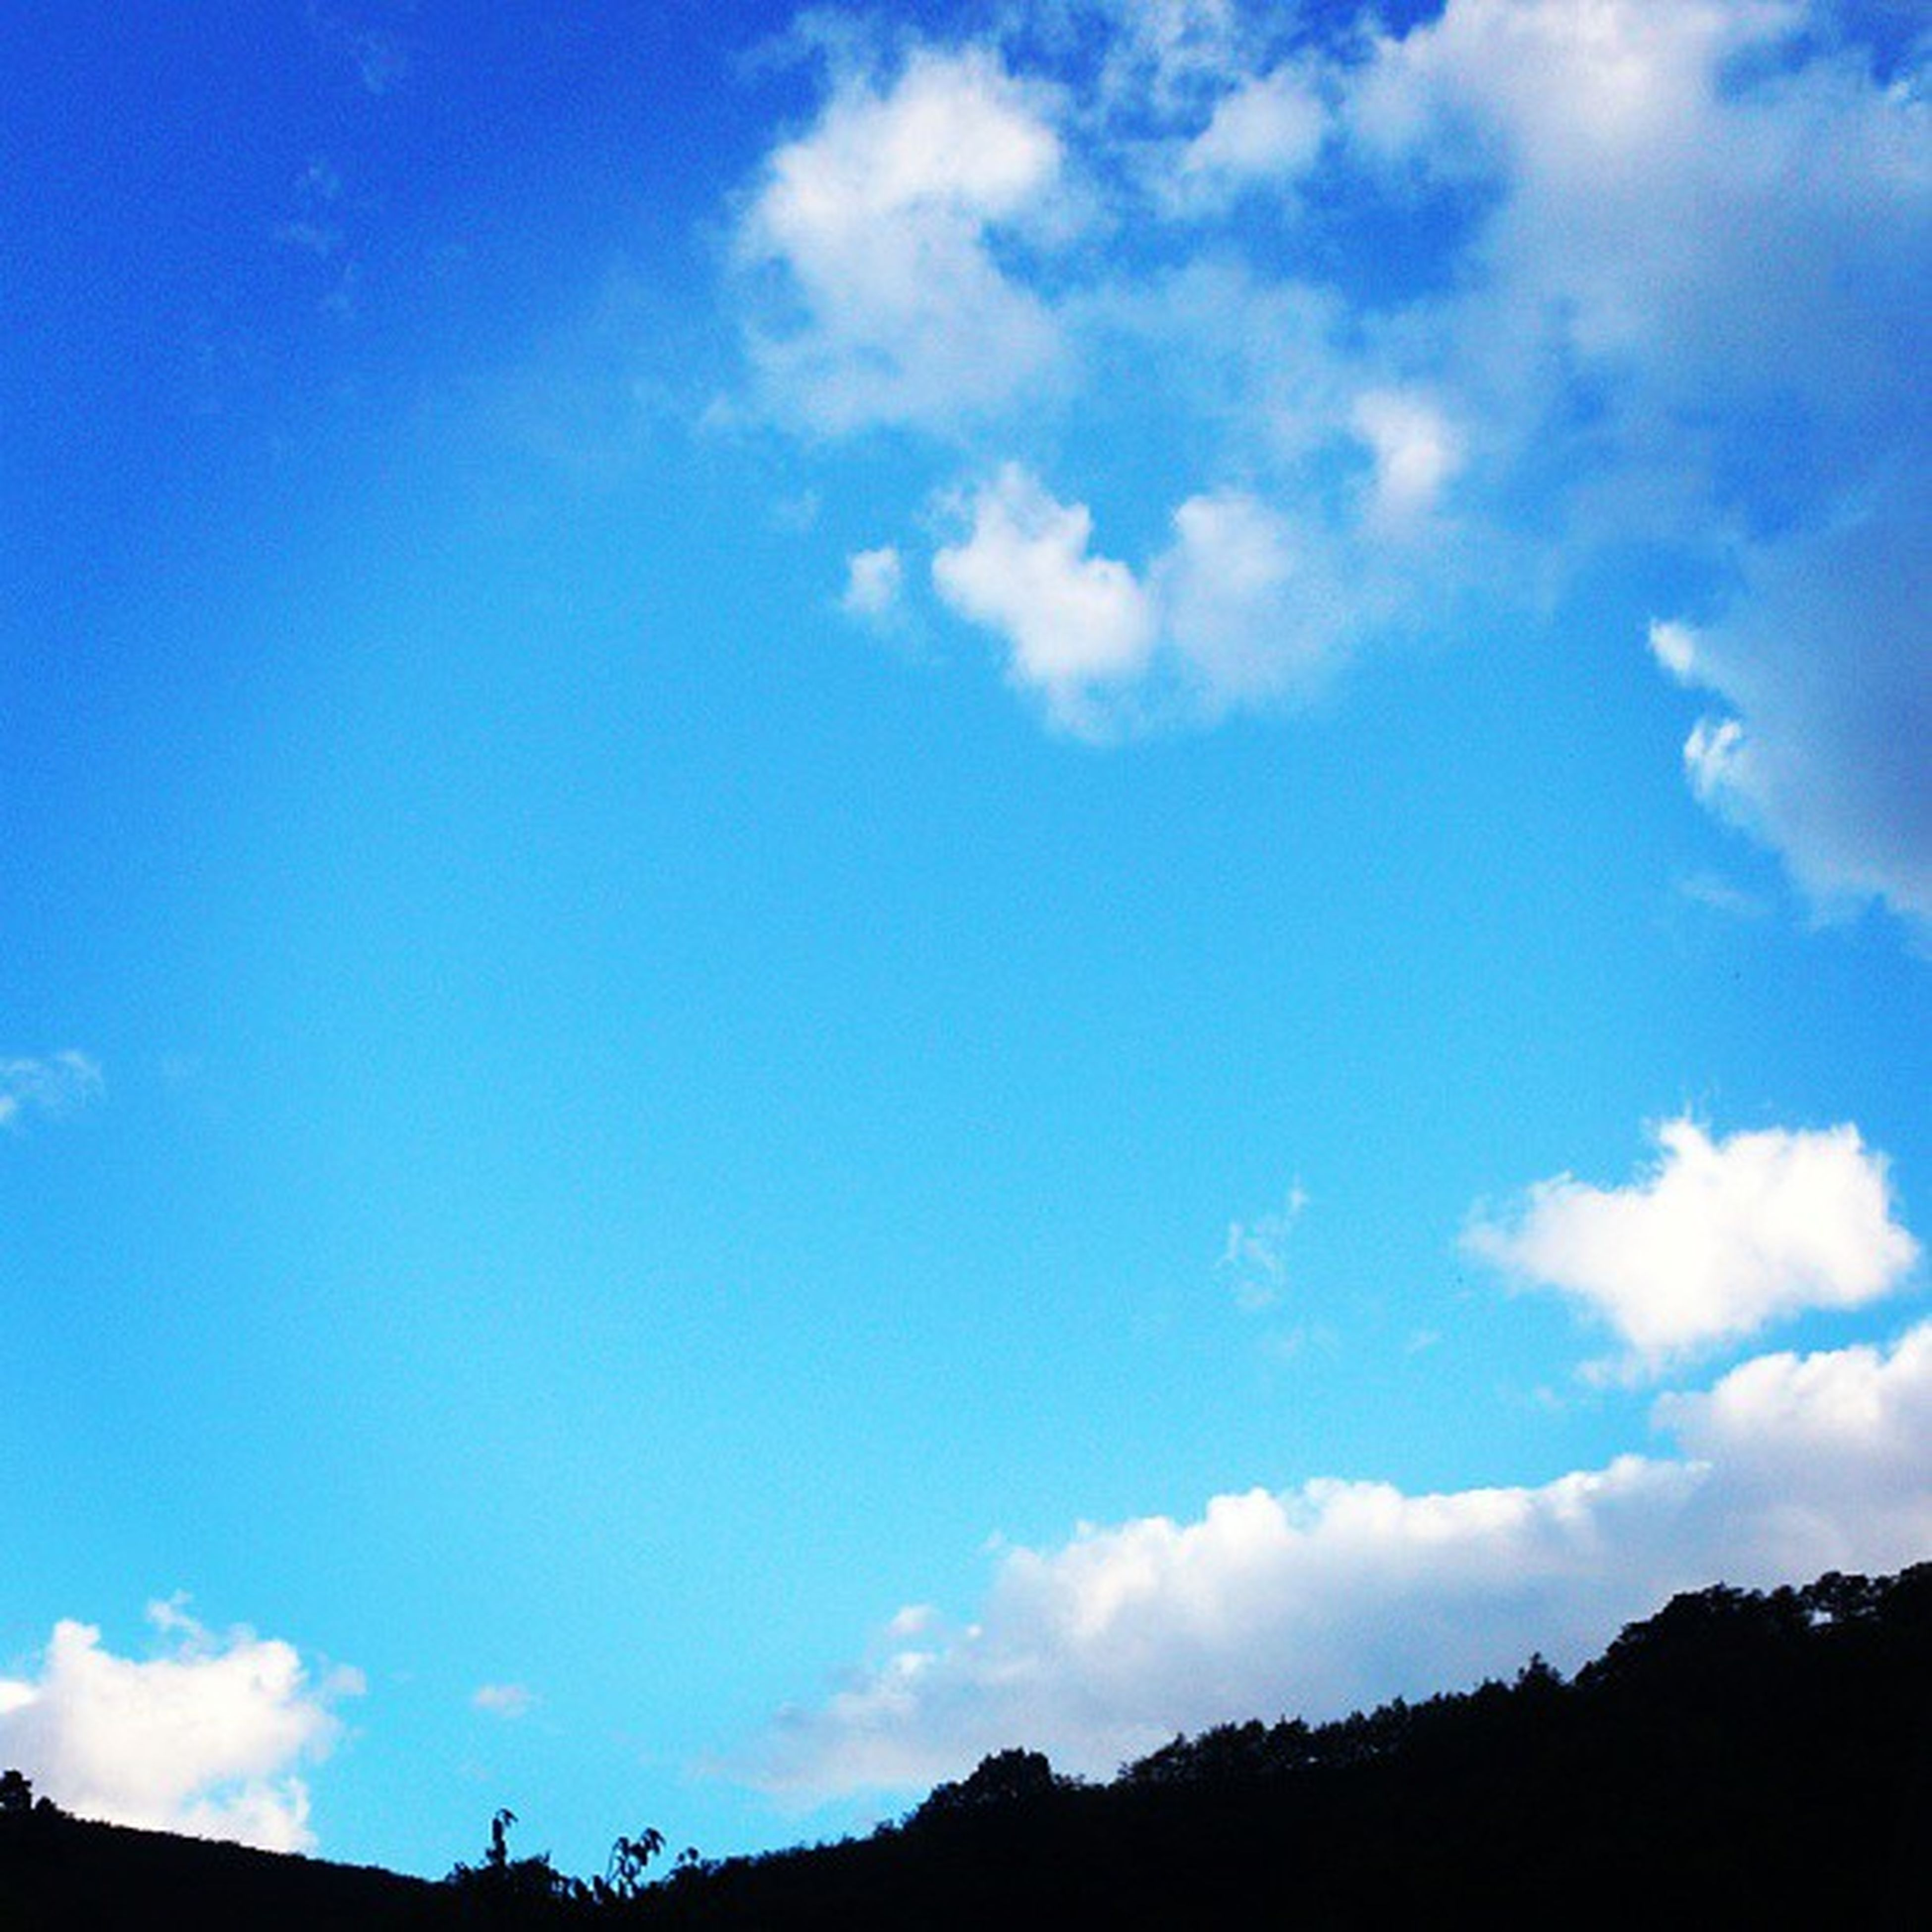 sky, blue, low angle view, cloud - sky, tranquility, beauty in nature, cloud, tranquil scene, scenics, nature, silhouette, tree, cloudy, outdoors, day, idyllic, no people, mountain, cloudscape, sunlight